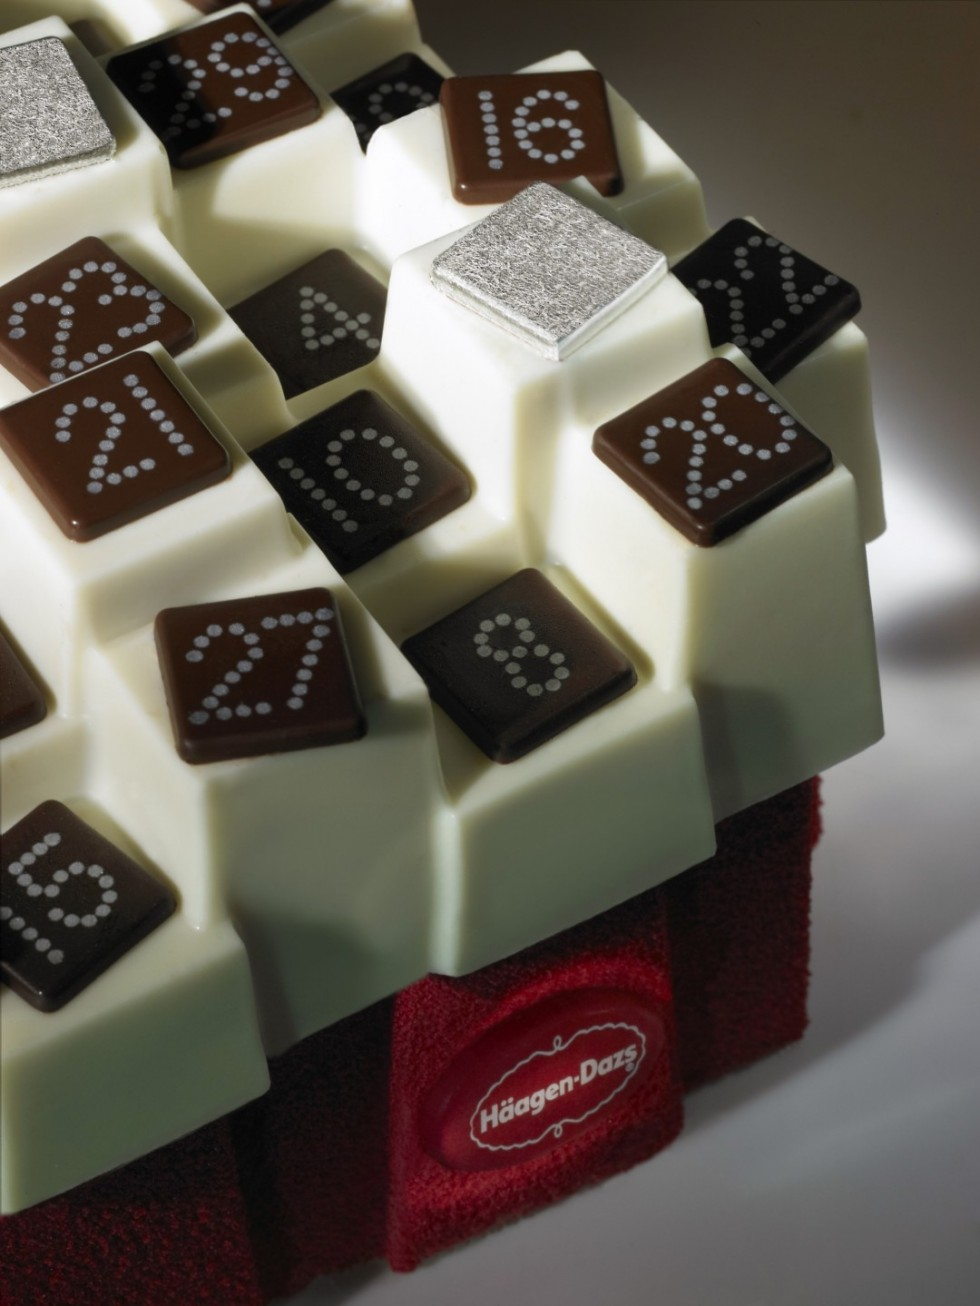 Haagen-Dazs - Le Calendrier by Paola Navone -